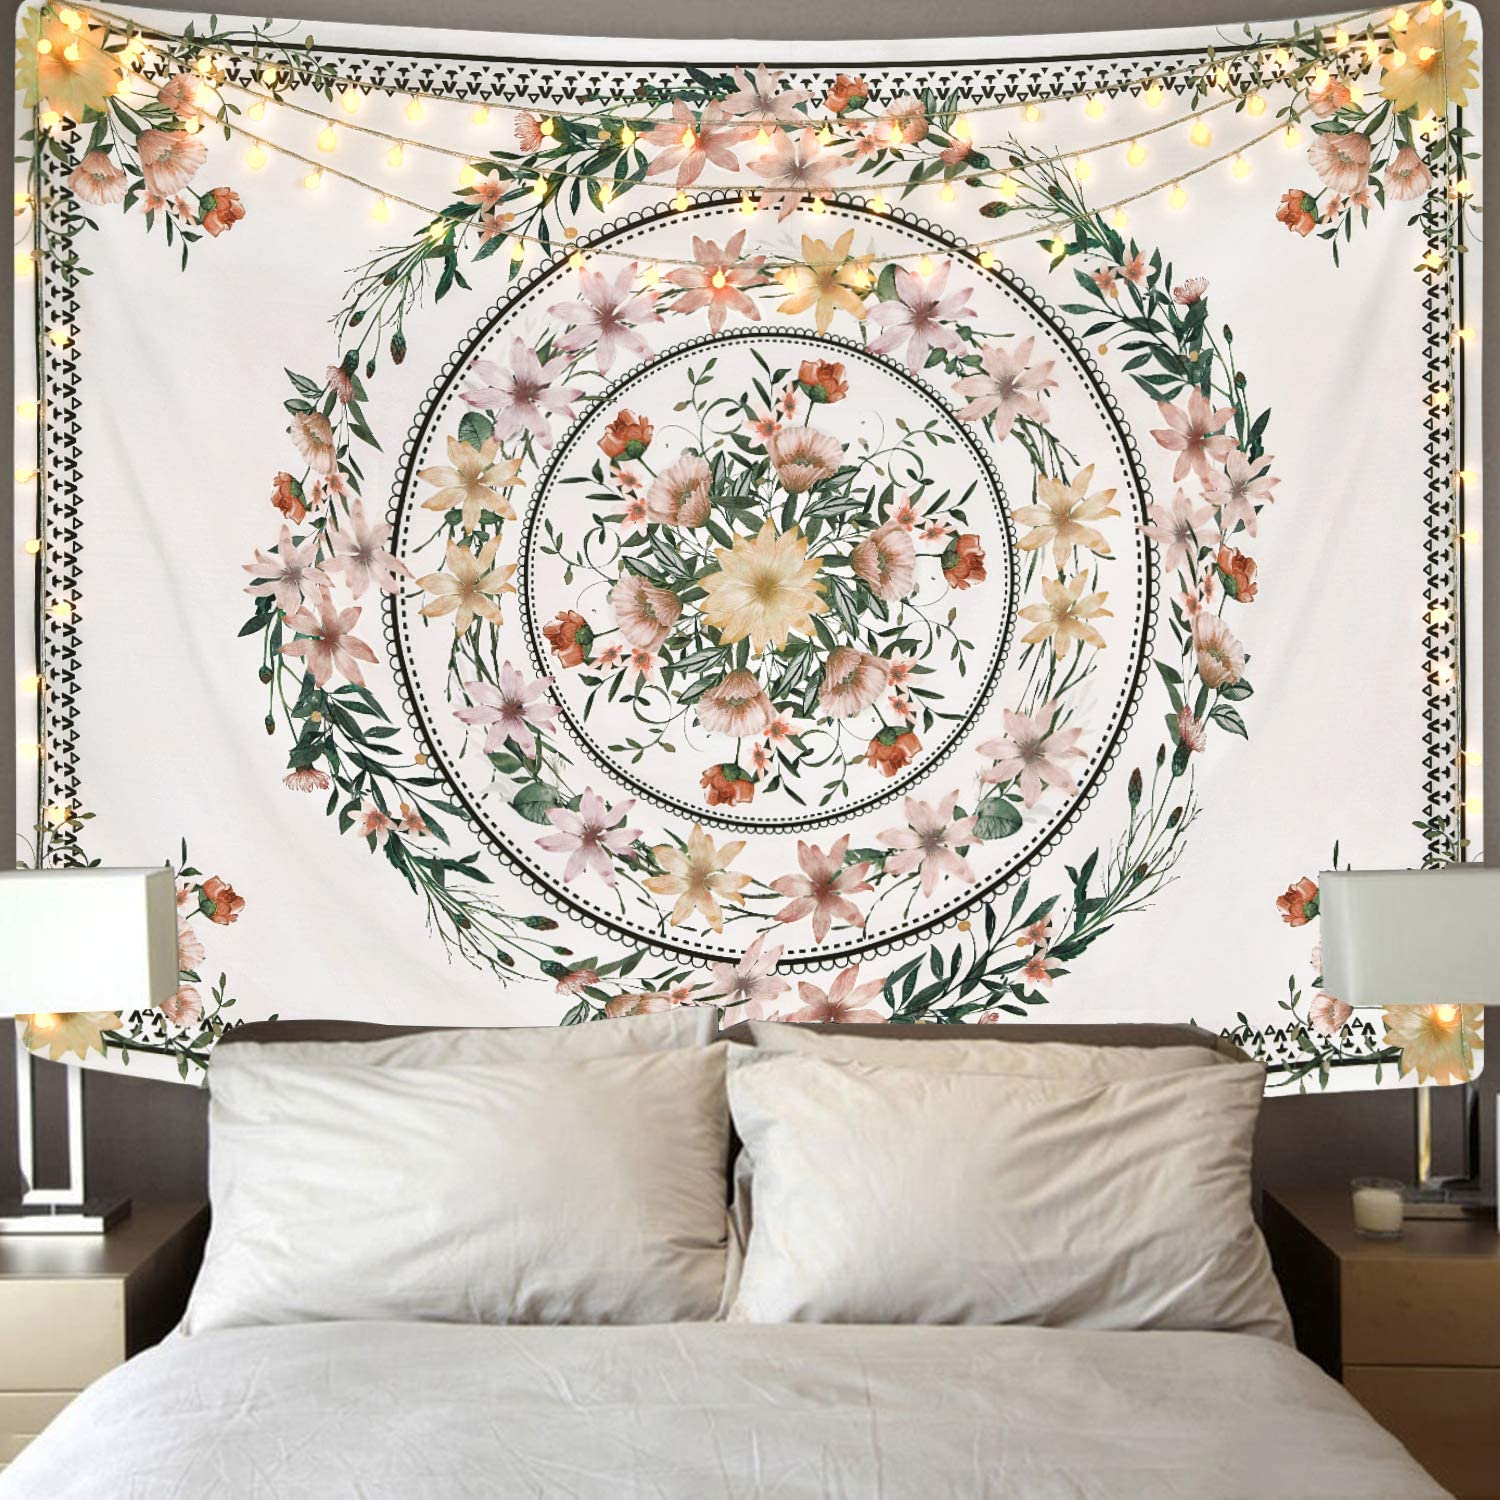 Mandala Tapestry Floral Medallion Tapestry Sketched Flower Plant Tapestry Bohemian Hippie Tapestry for Room 51.2 x 59.1 inches